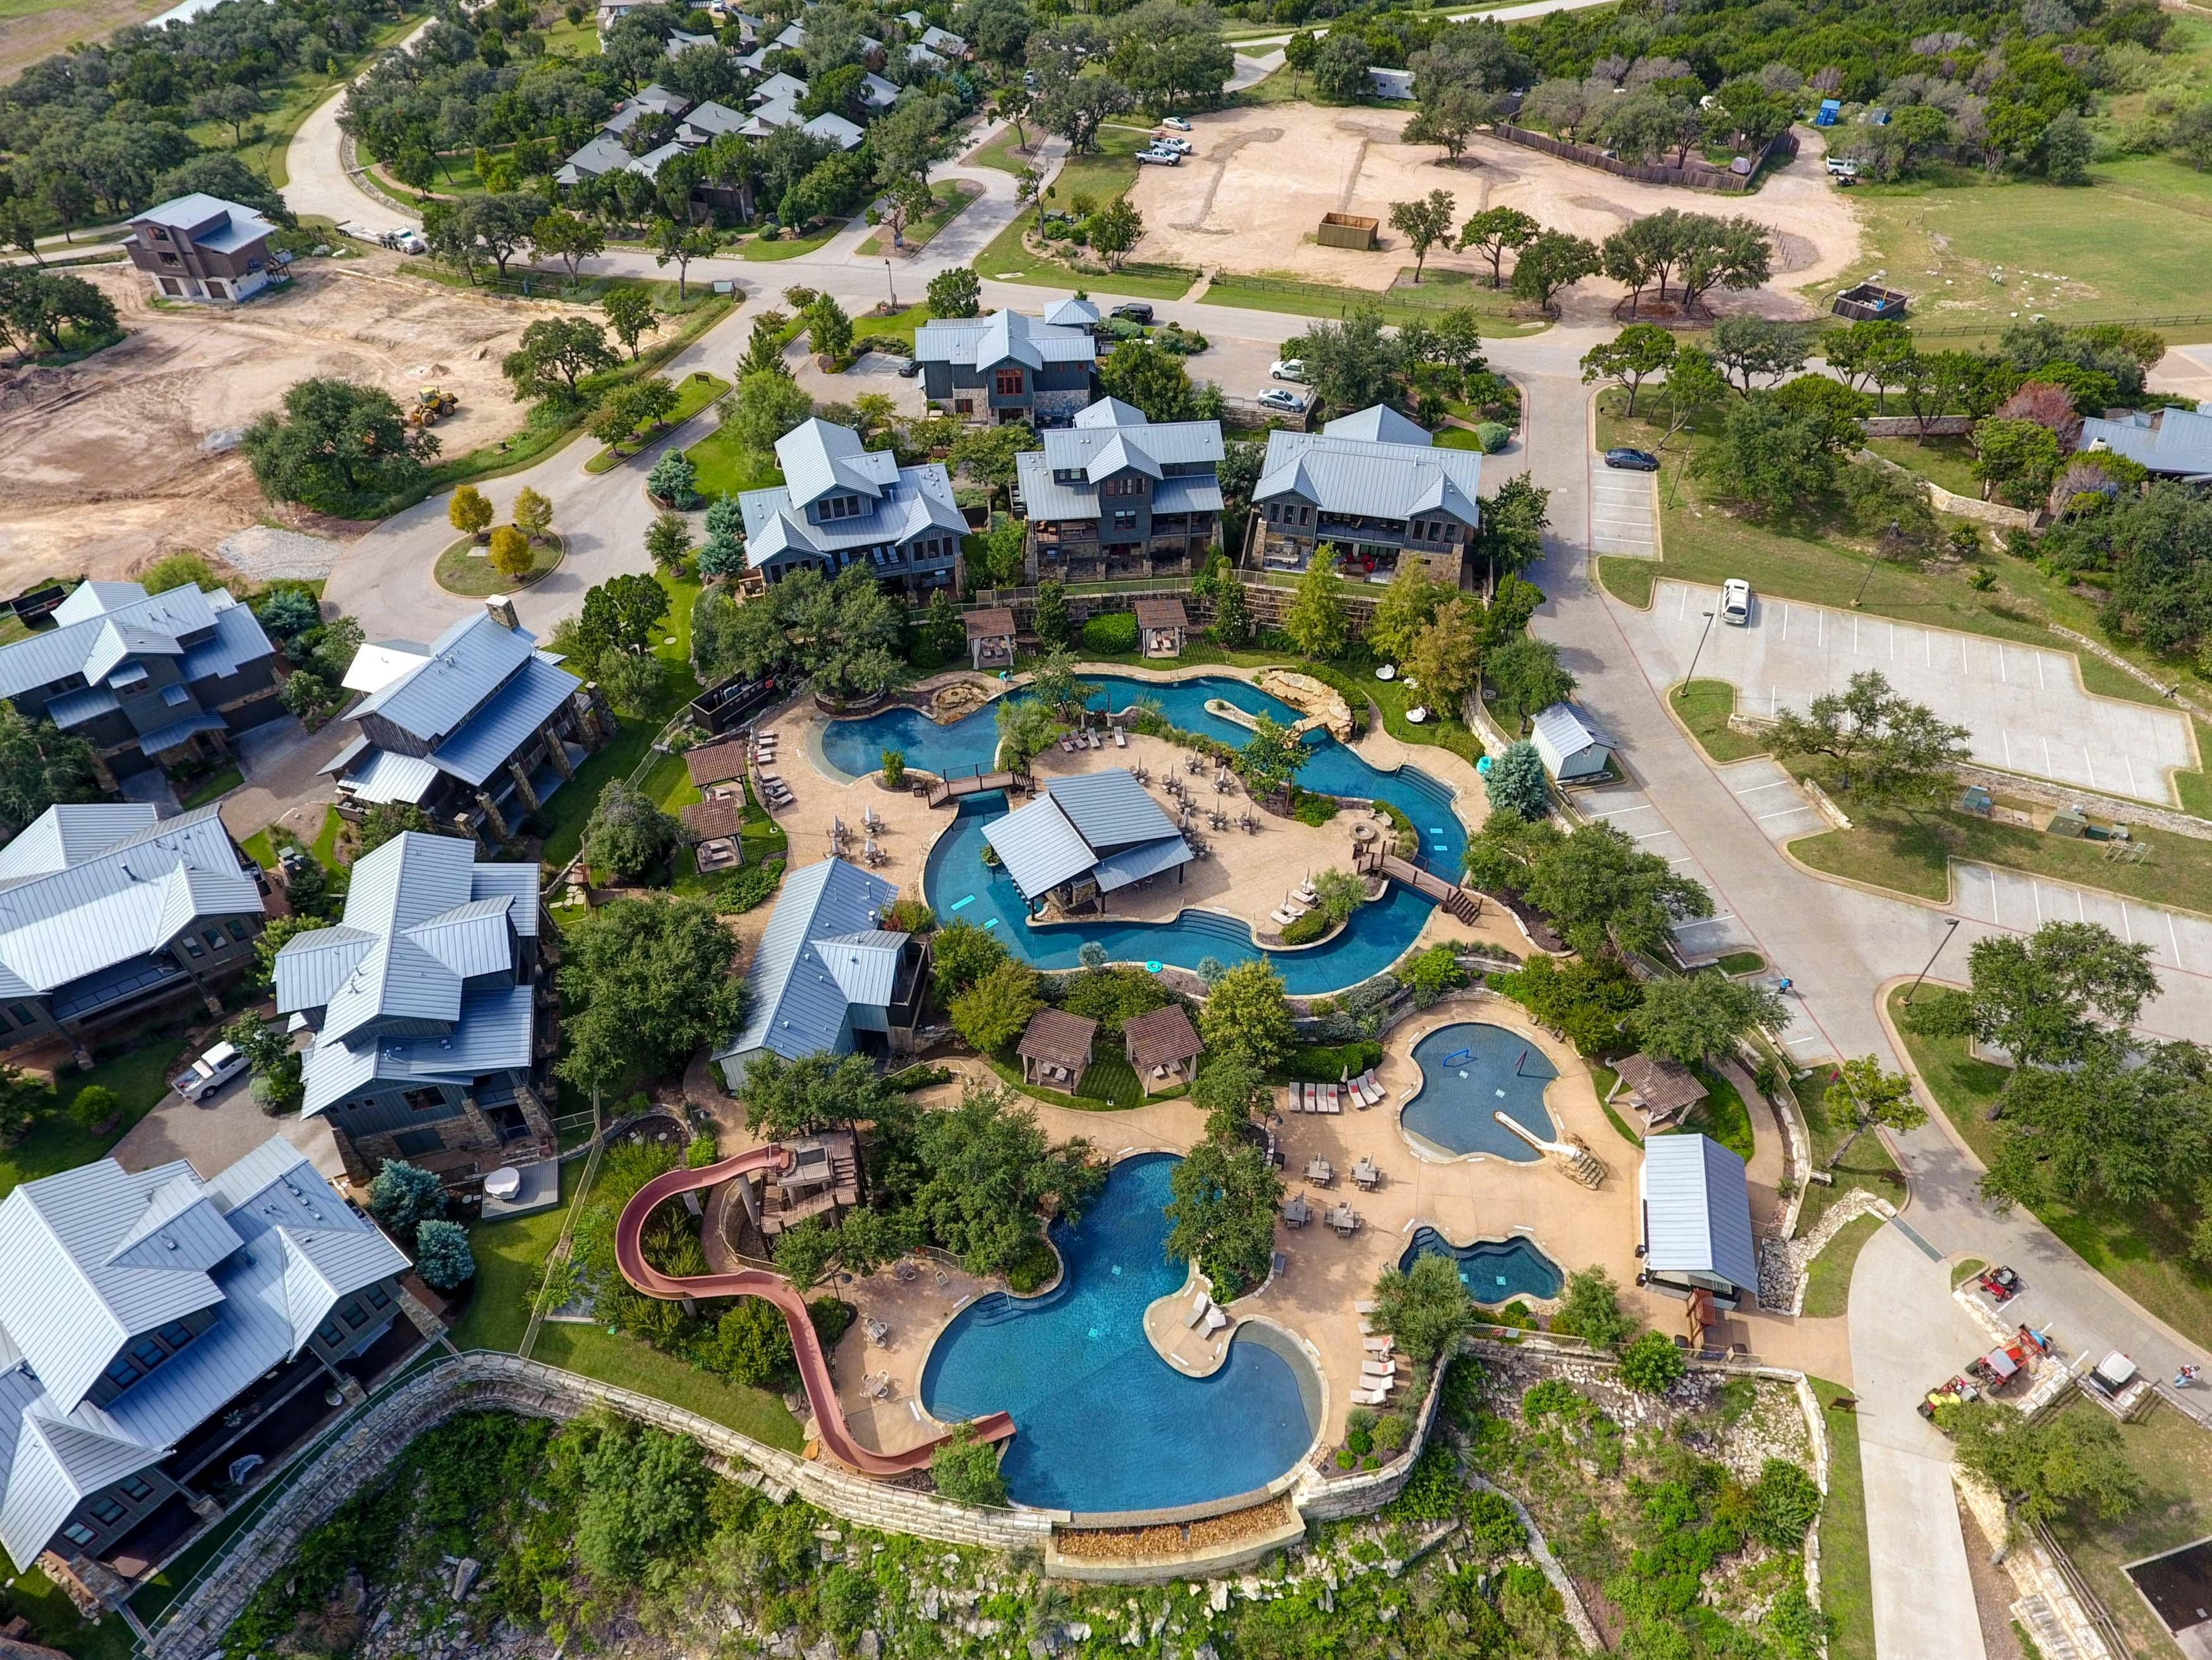 During your stay at The Reserve at Lake Travis, you'll enjoy access to all the amenities you could want for a vacation.